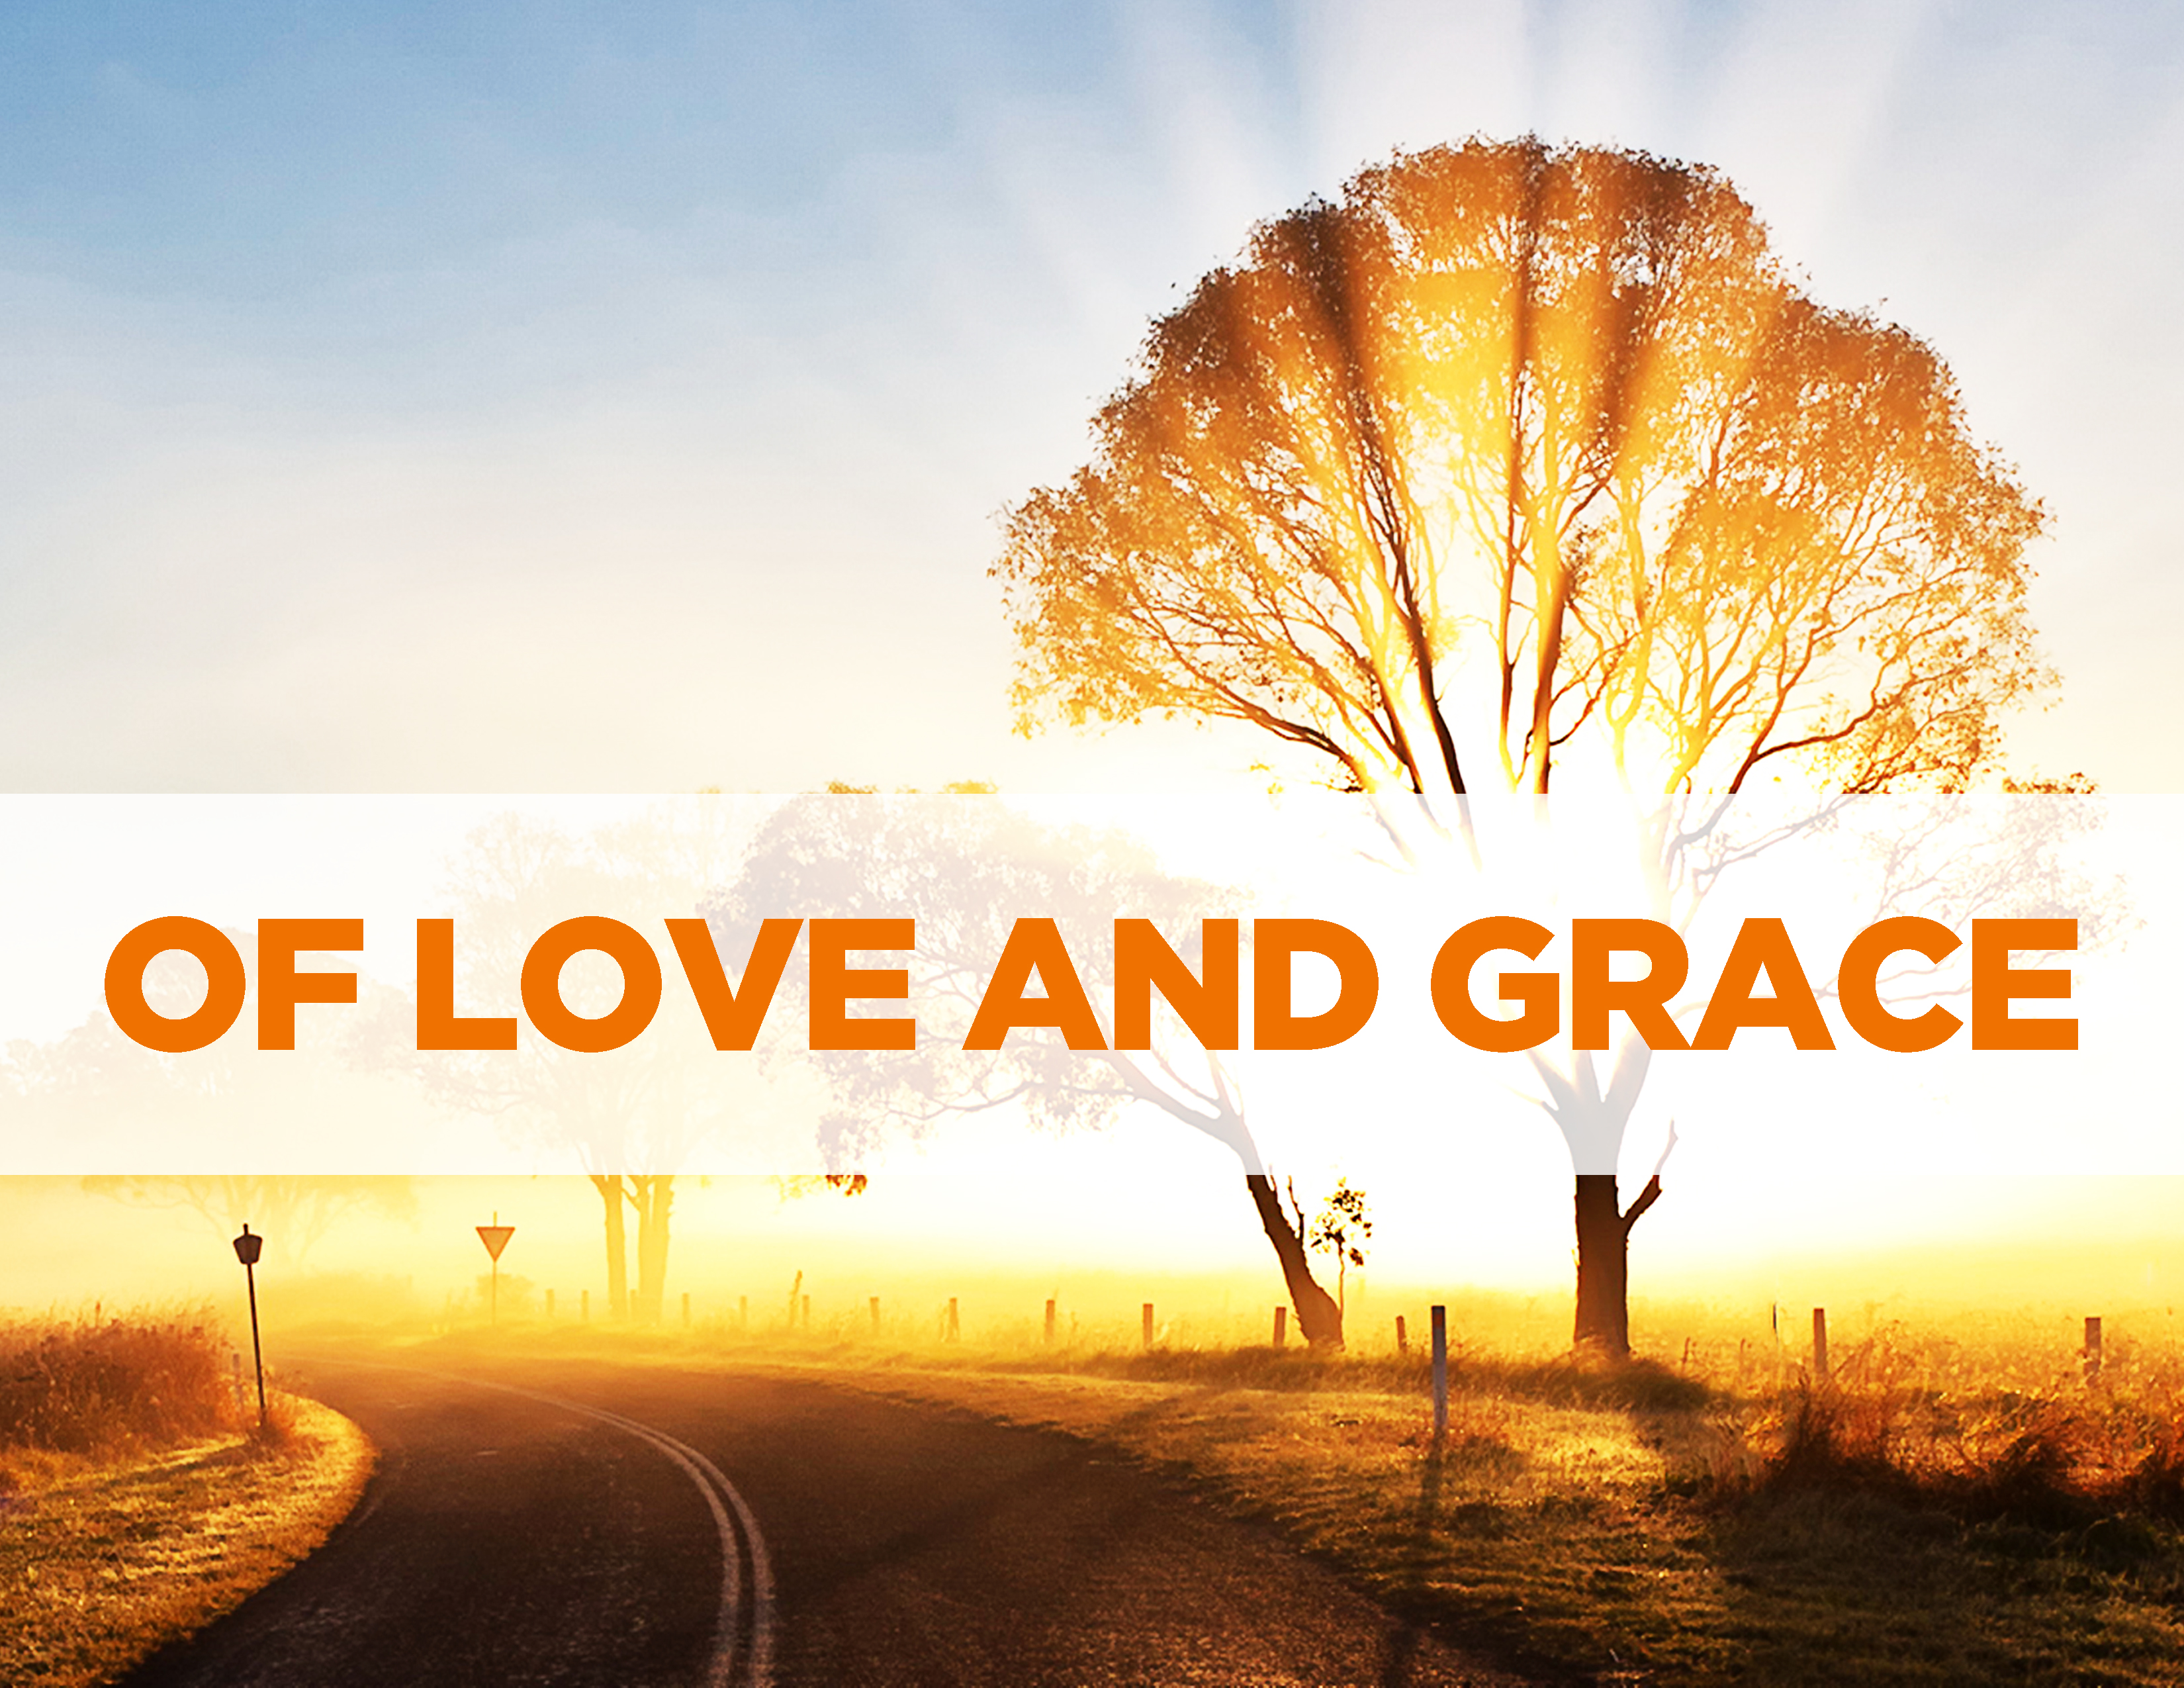 Of love and grace